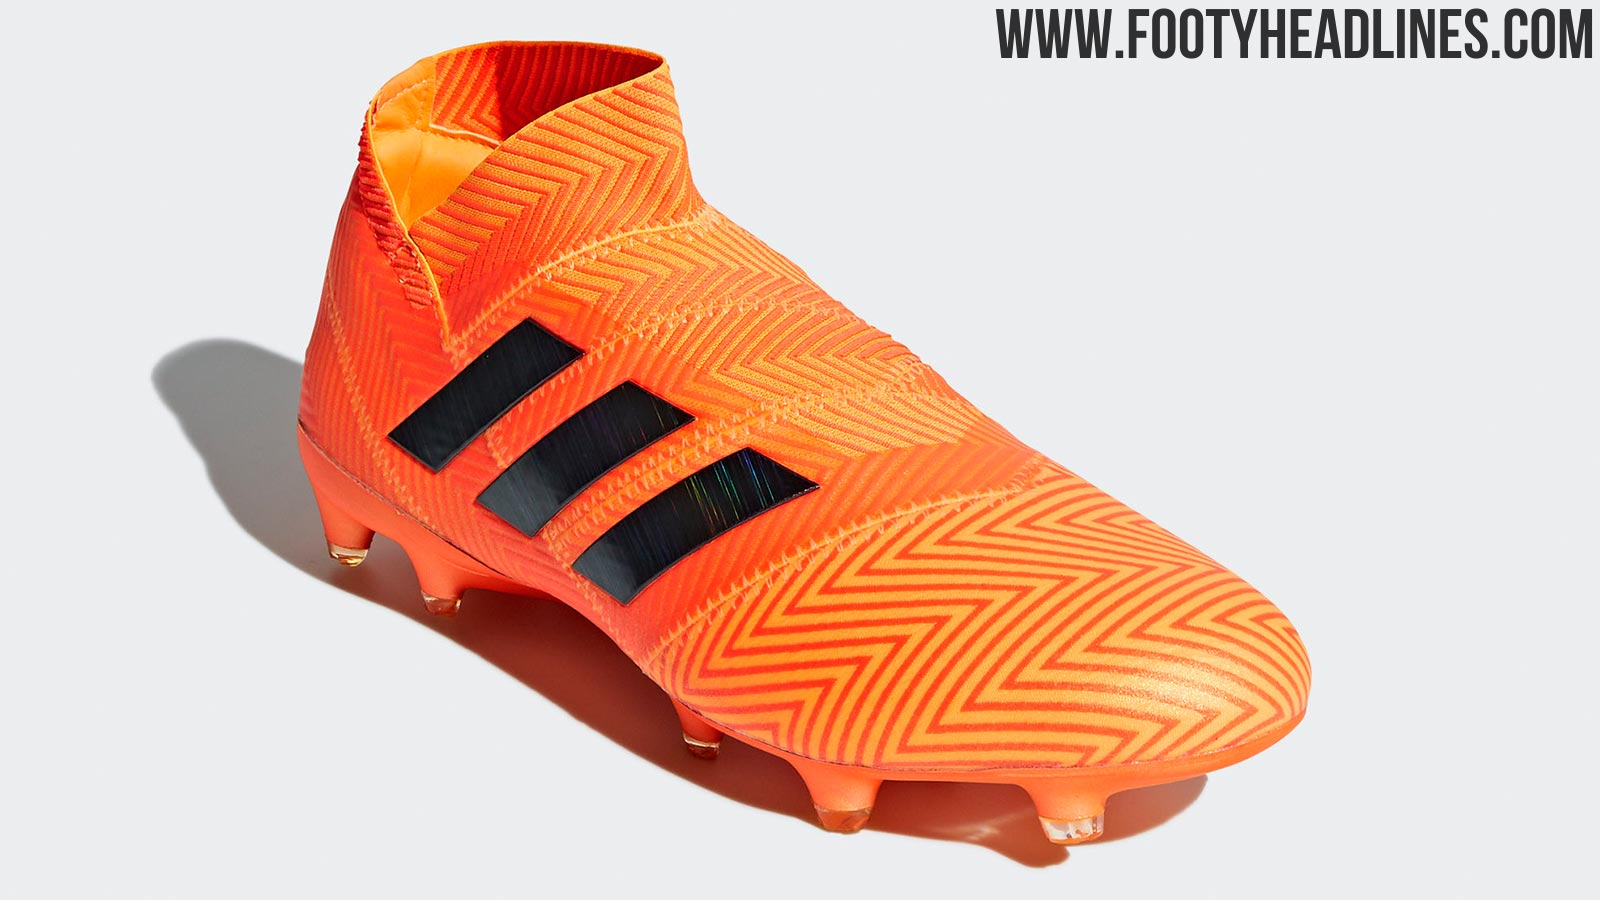 bc7a4421c698 Meanwhile, the sole plate hasn't undergone any changes at all from Adidas  Nemeziz 17 to 18.